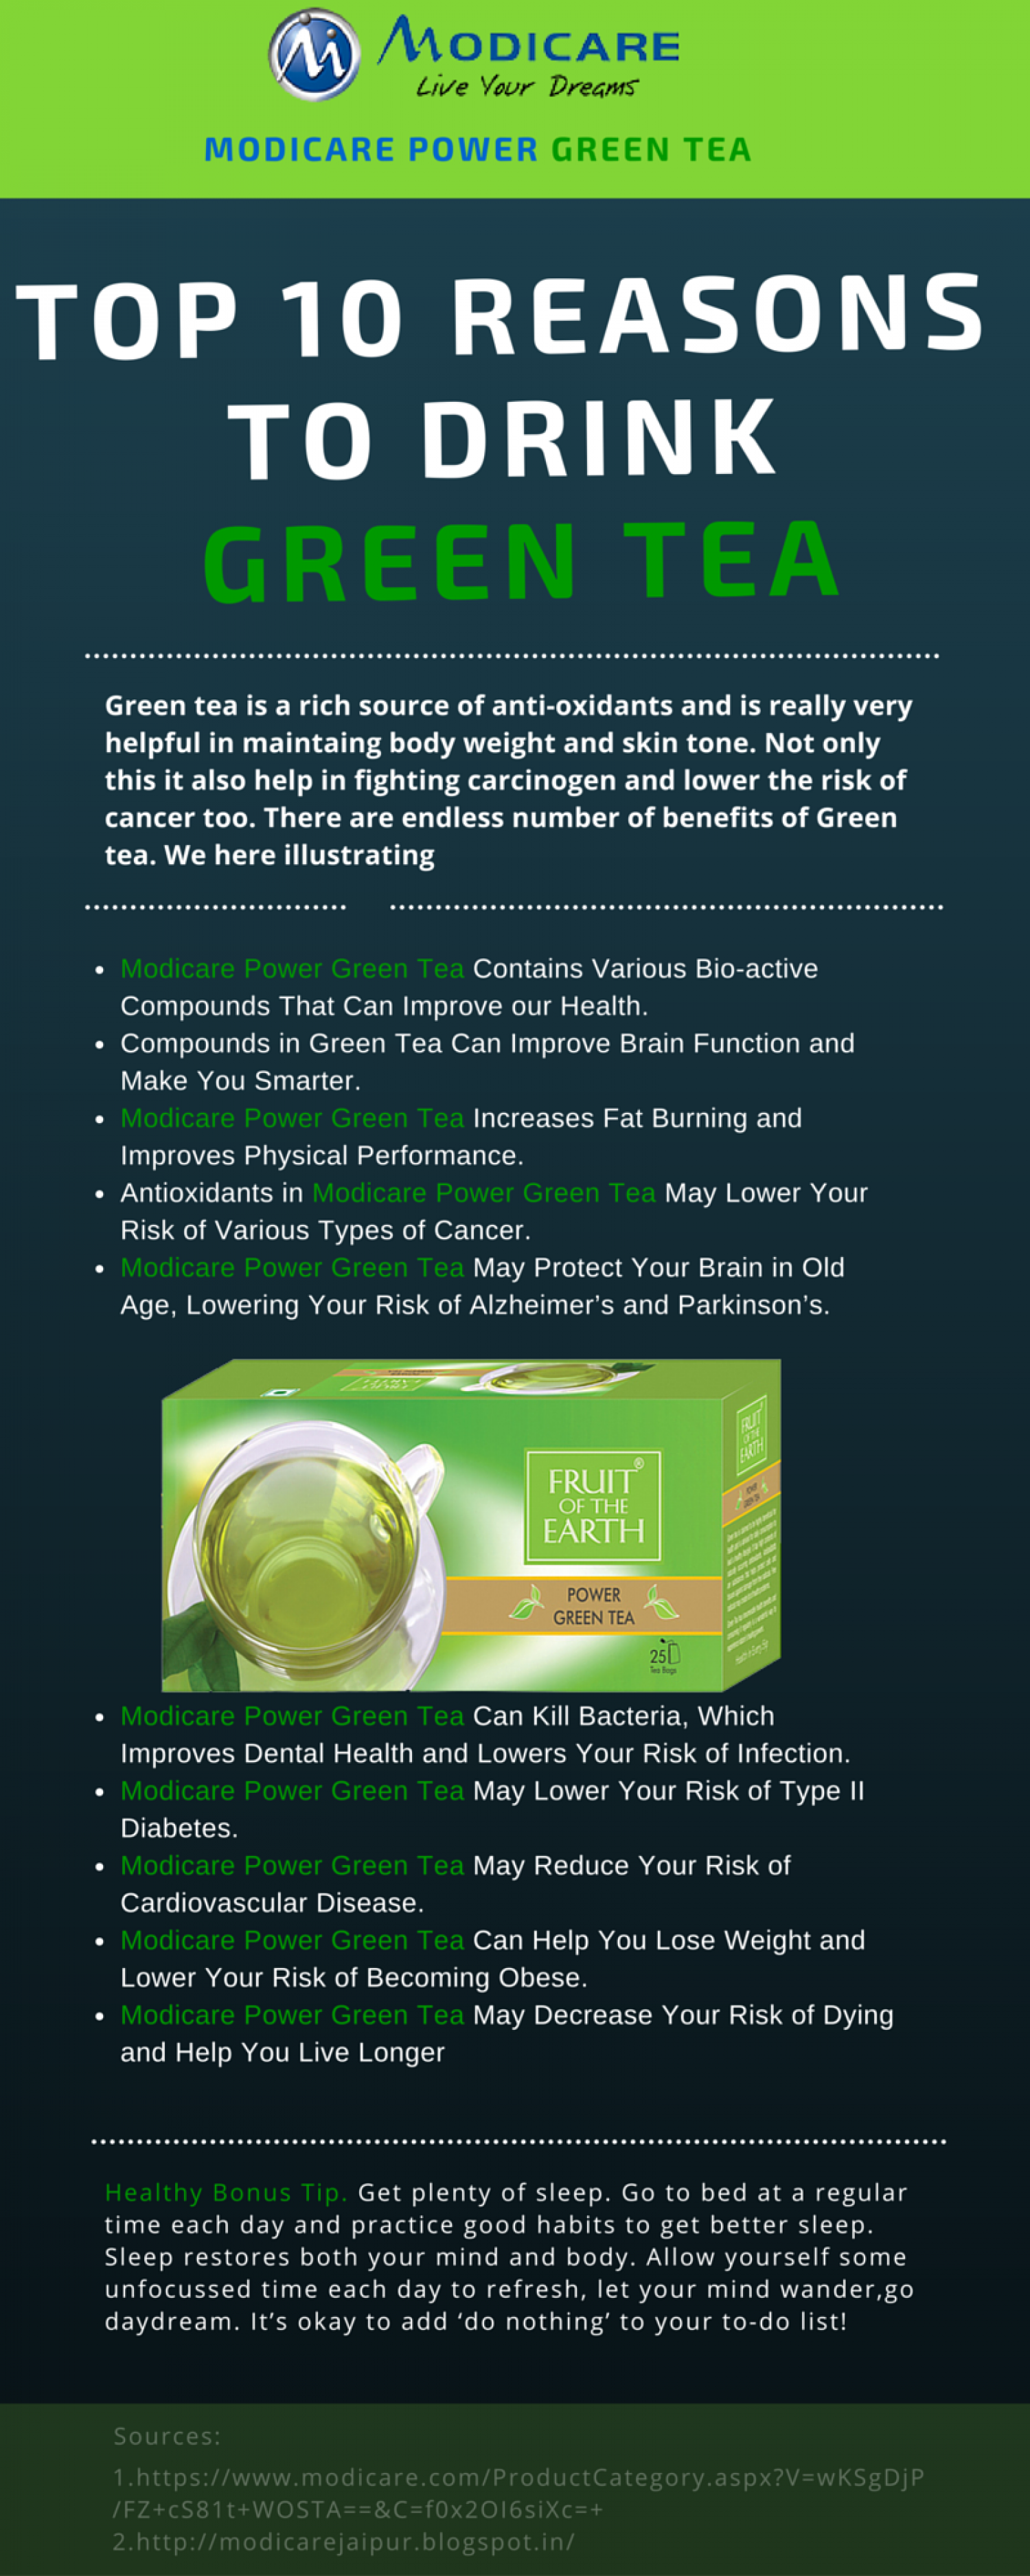 top 10 reason to drink green tea - infographic | visual.ly